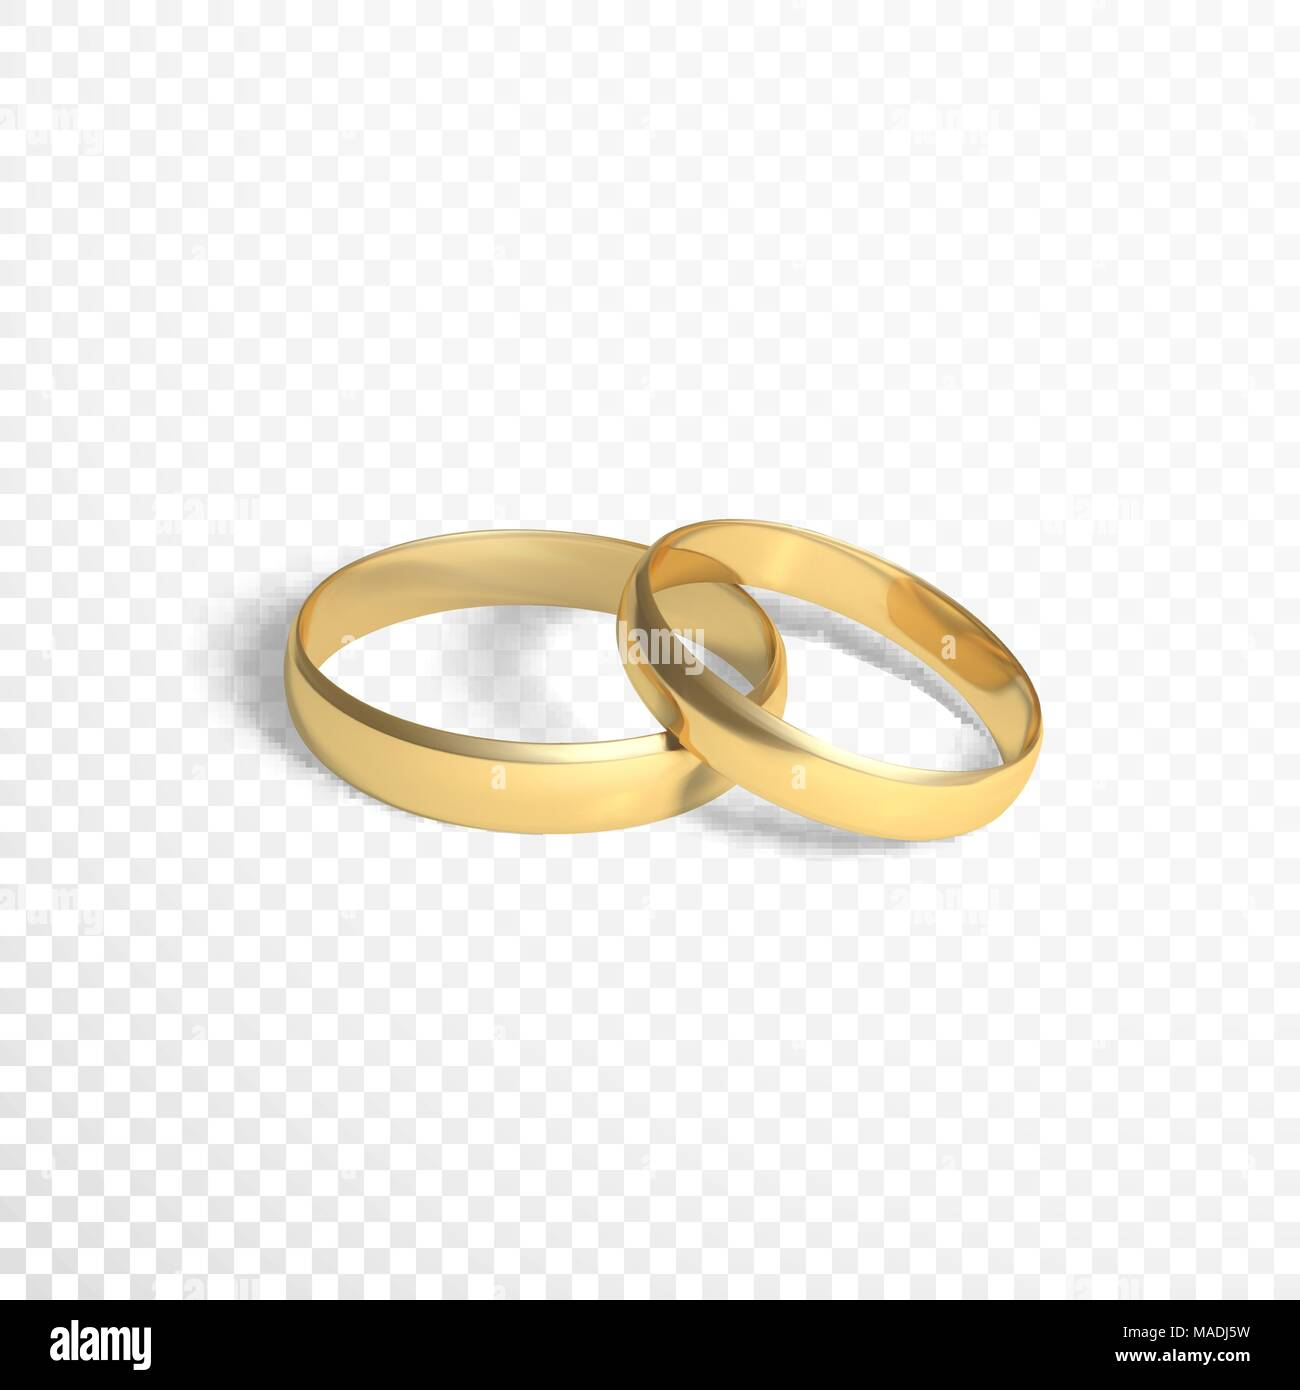 Golden Rings Symbol Of Marriage Two Gold Vector Illustration Isolated On Transparent Background: Wedding Ring Without Background At Websimilar.org